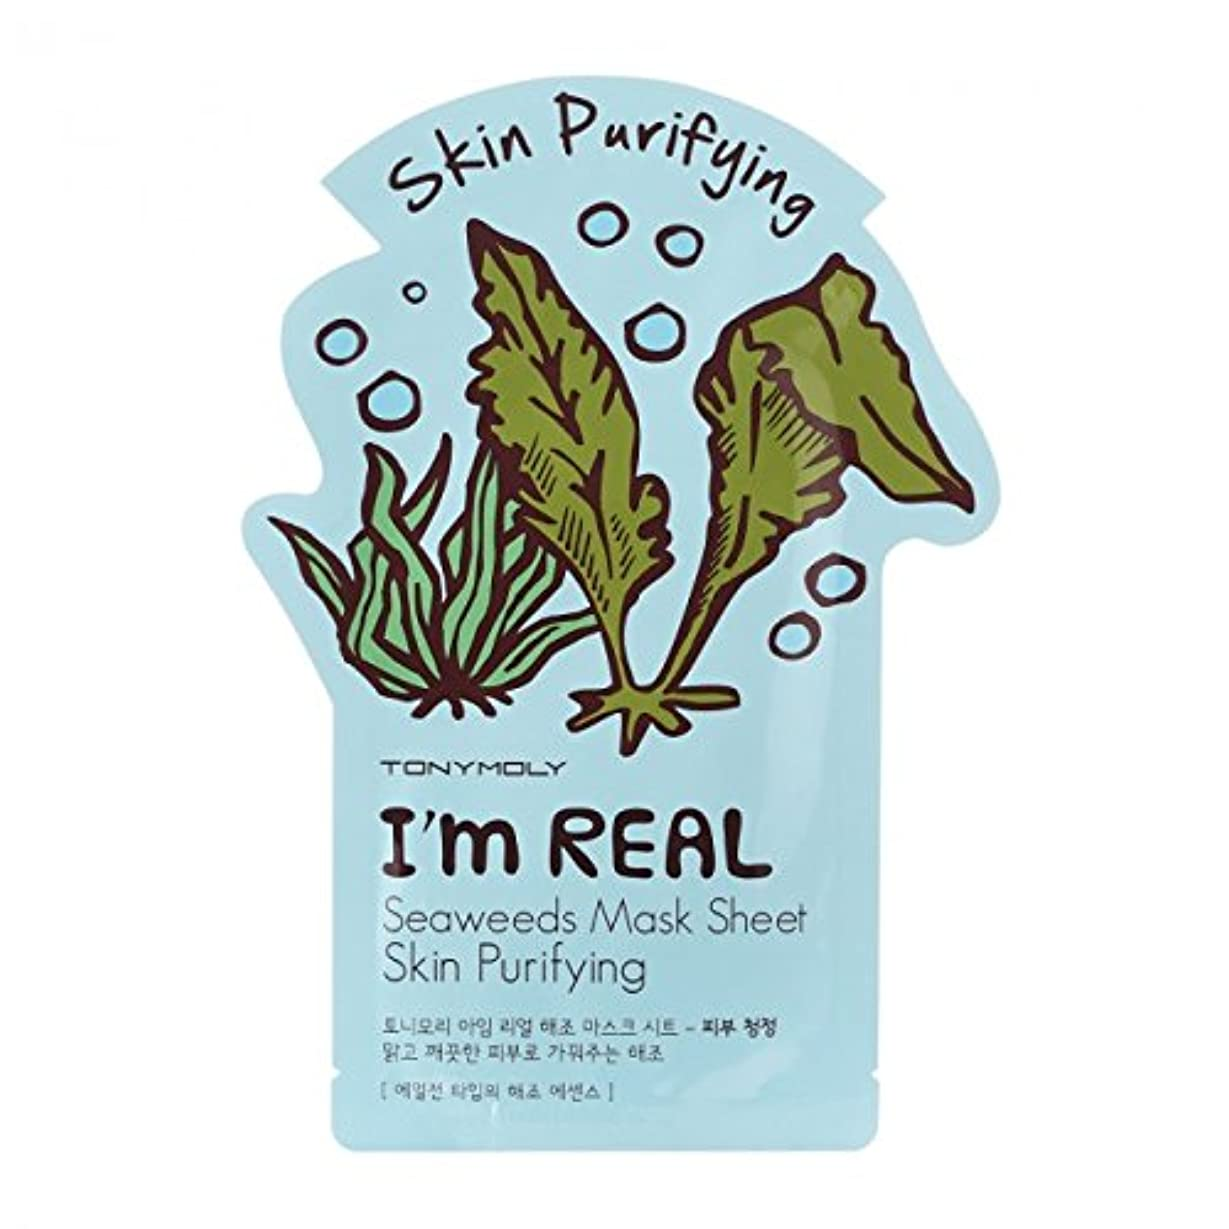 月面最初カフェテリア(3 Pack) TONYMOLY I'm Real Seaweeds Mask Sheet Skin Purifying (並行輸入品)